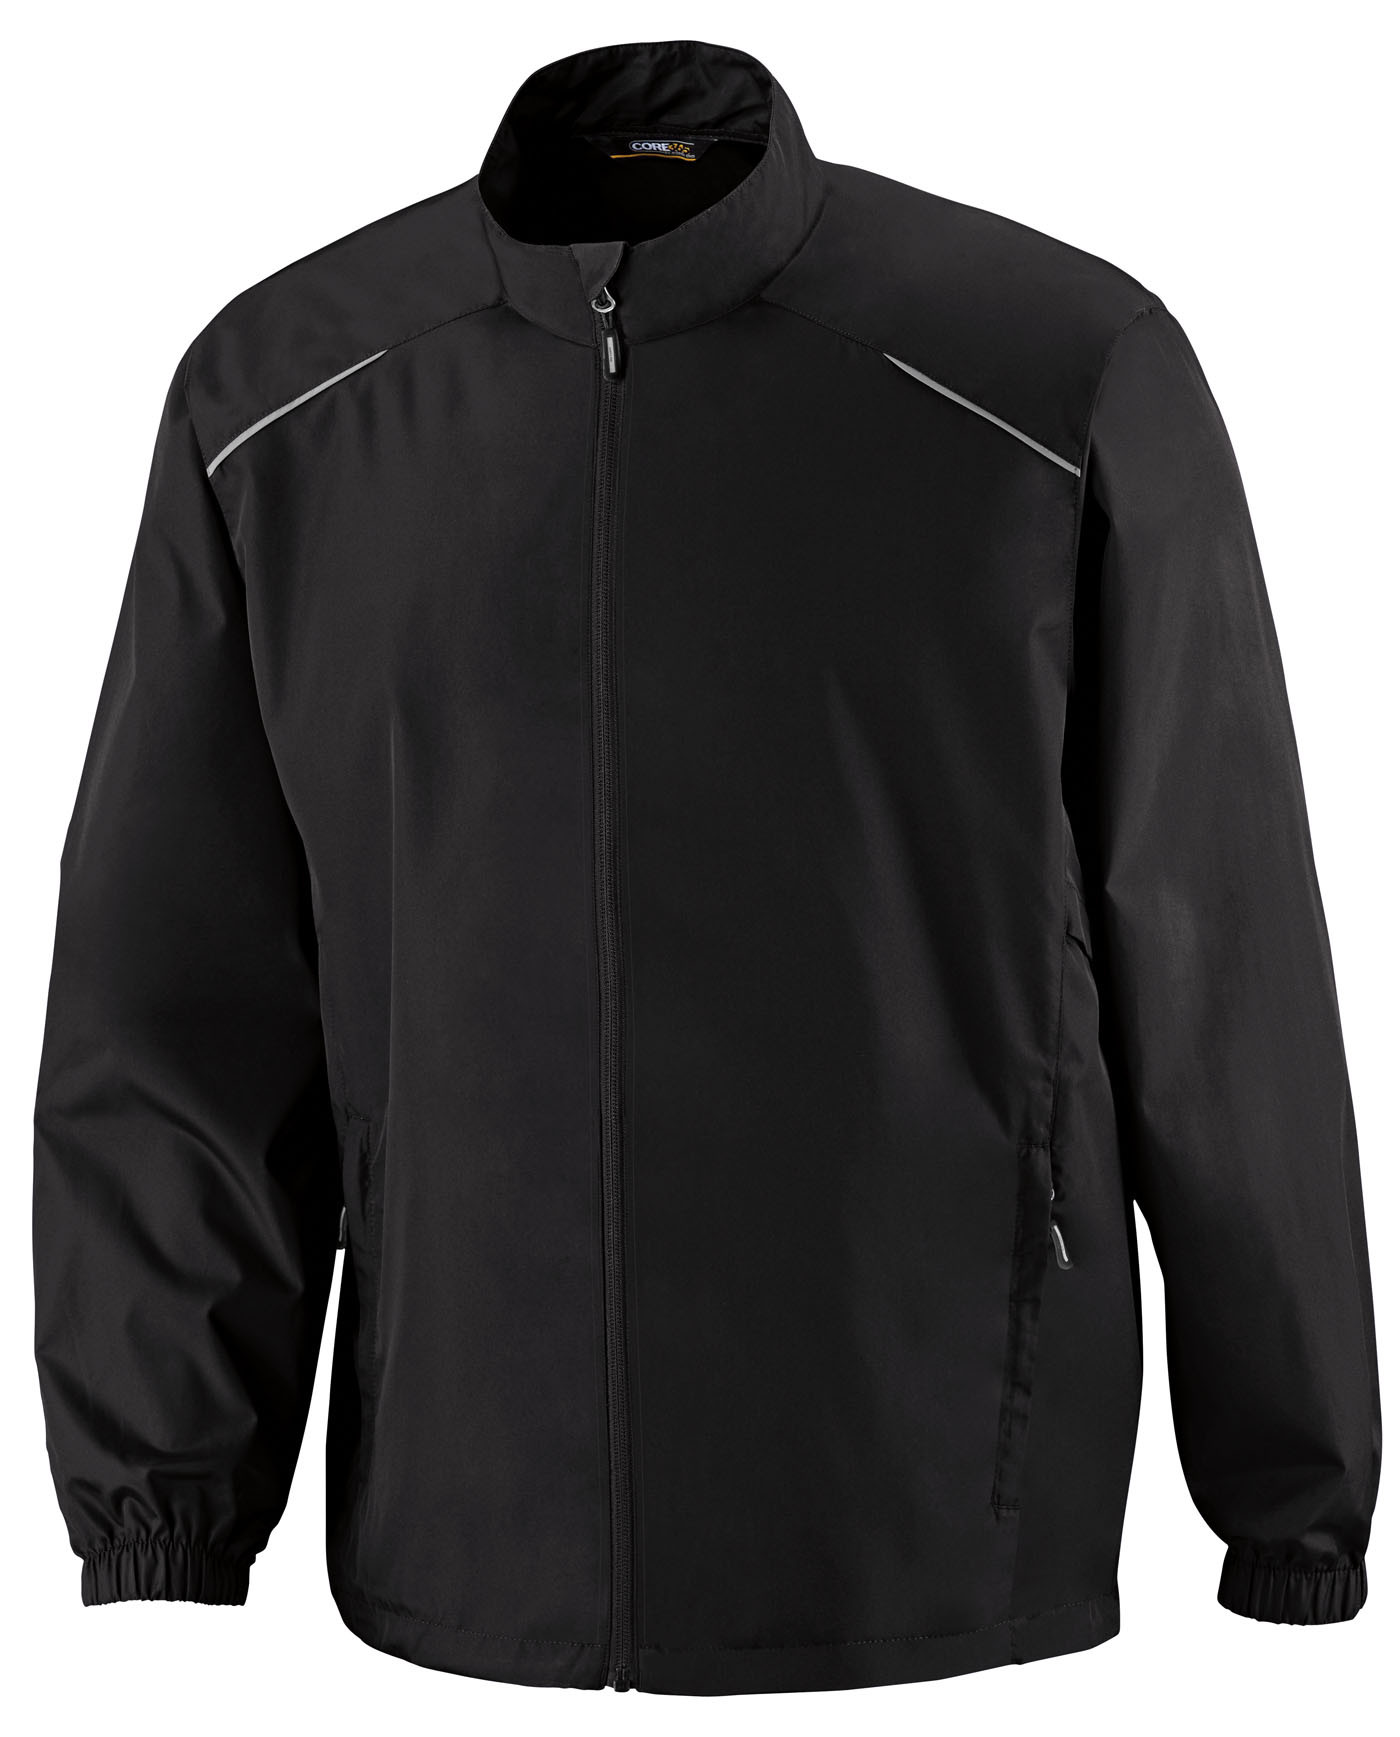 Ash Core365 88183T - Motivate Core365 Mens Unlined Lightweight Jacket